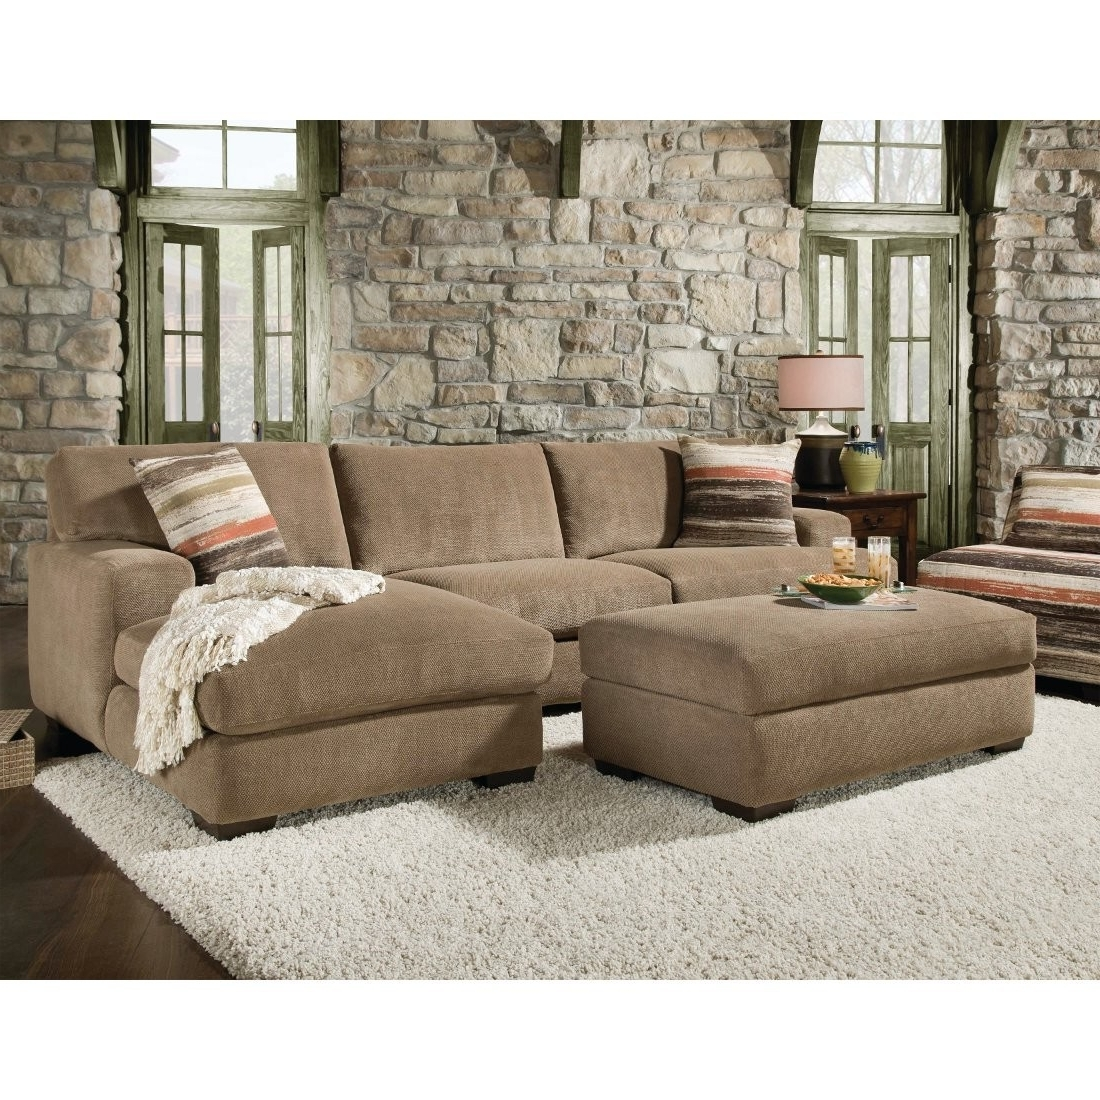 2019 Beautiful Sectional Sofa With Chaise And Ottoman Pictures In Sectional Couches With Large Ottoman (View 2 of 20)